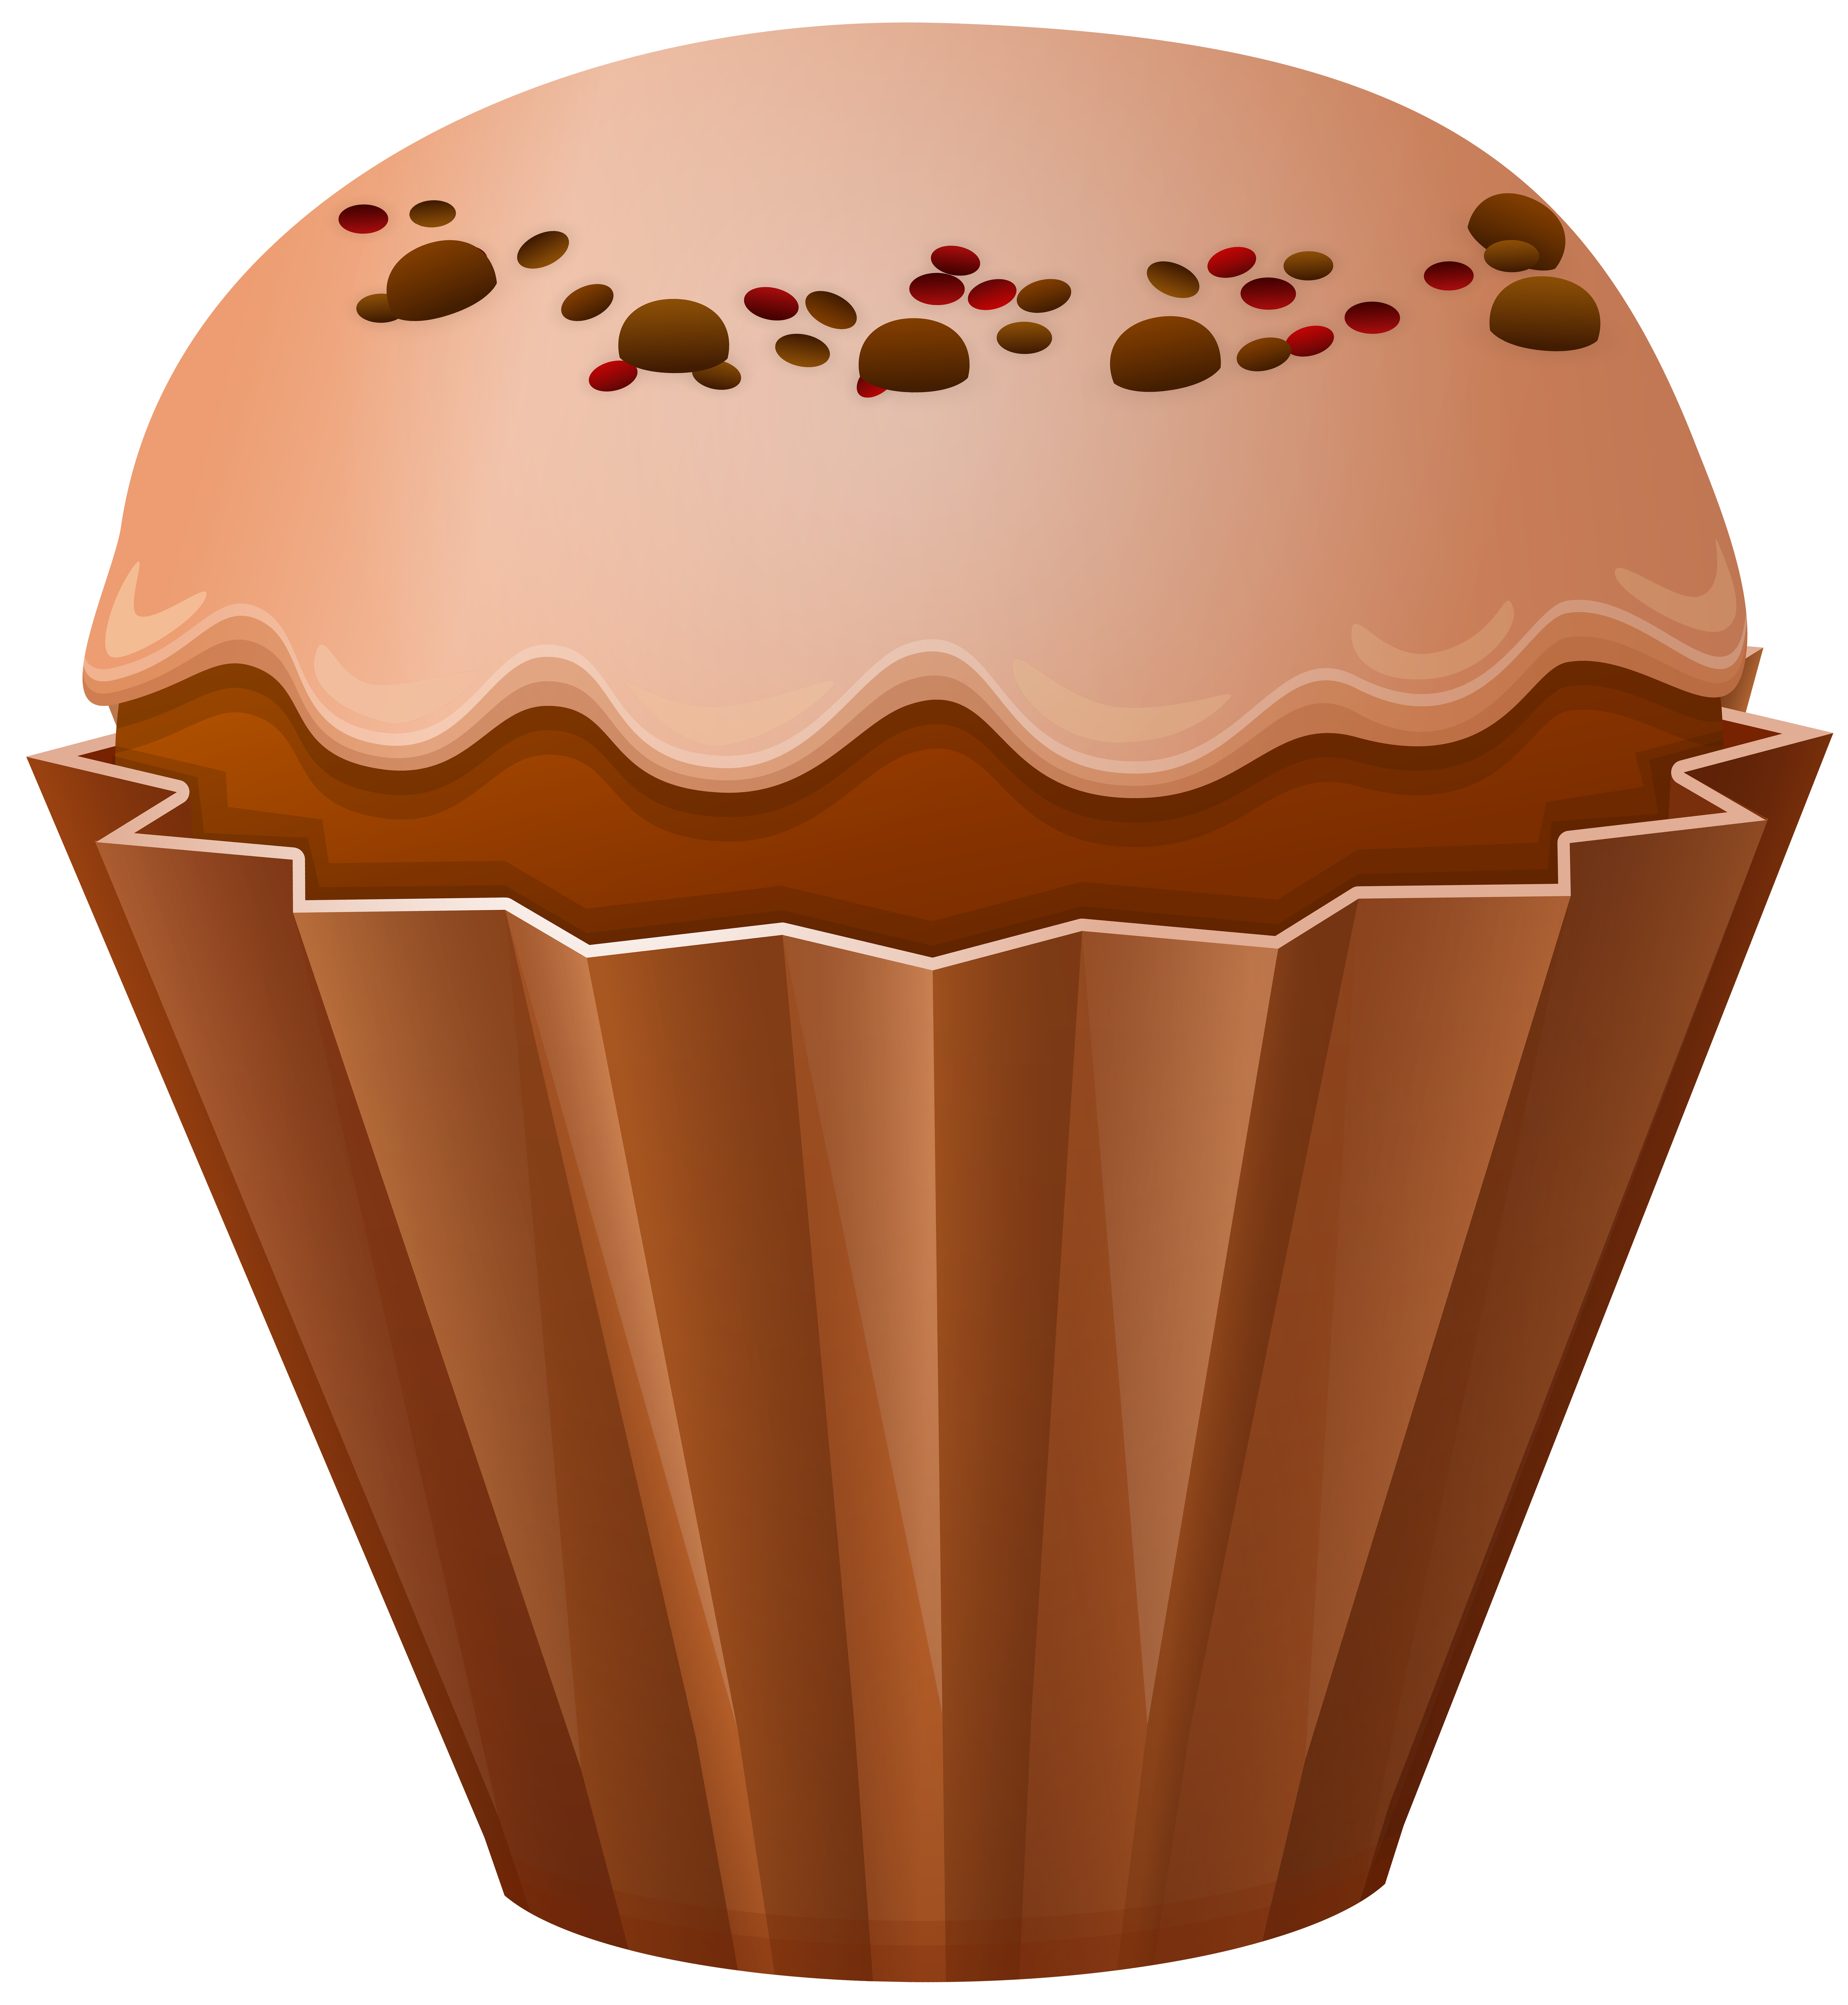 Muffins clipart new year. Muffin png clip art